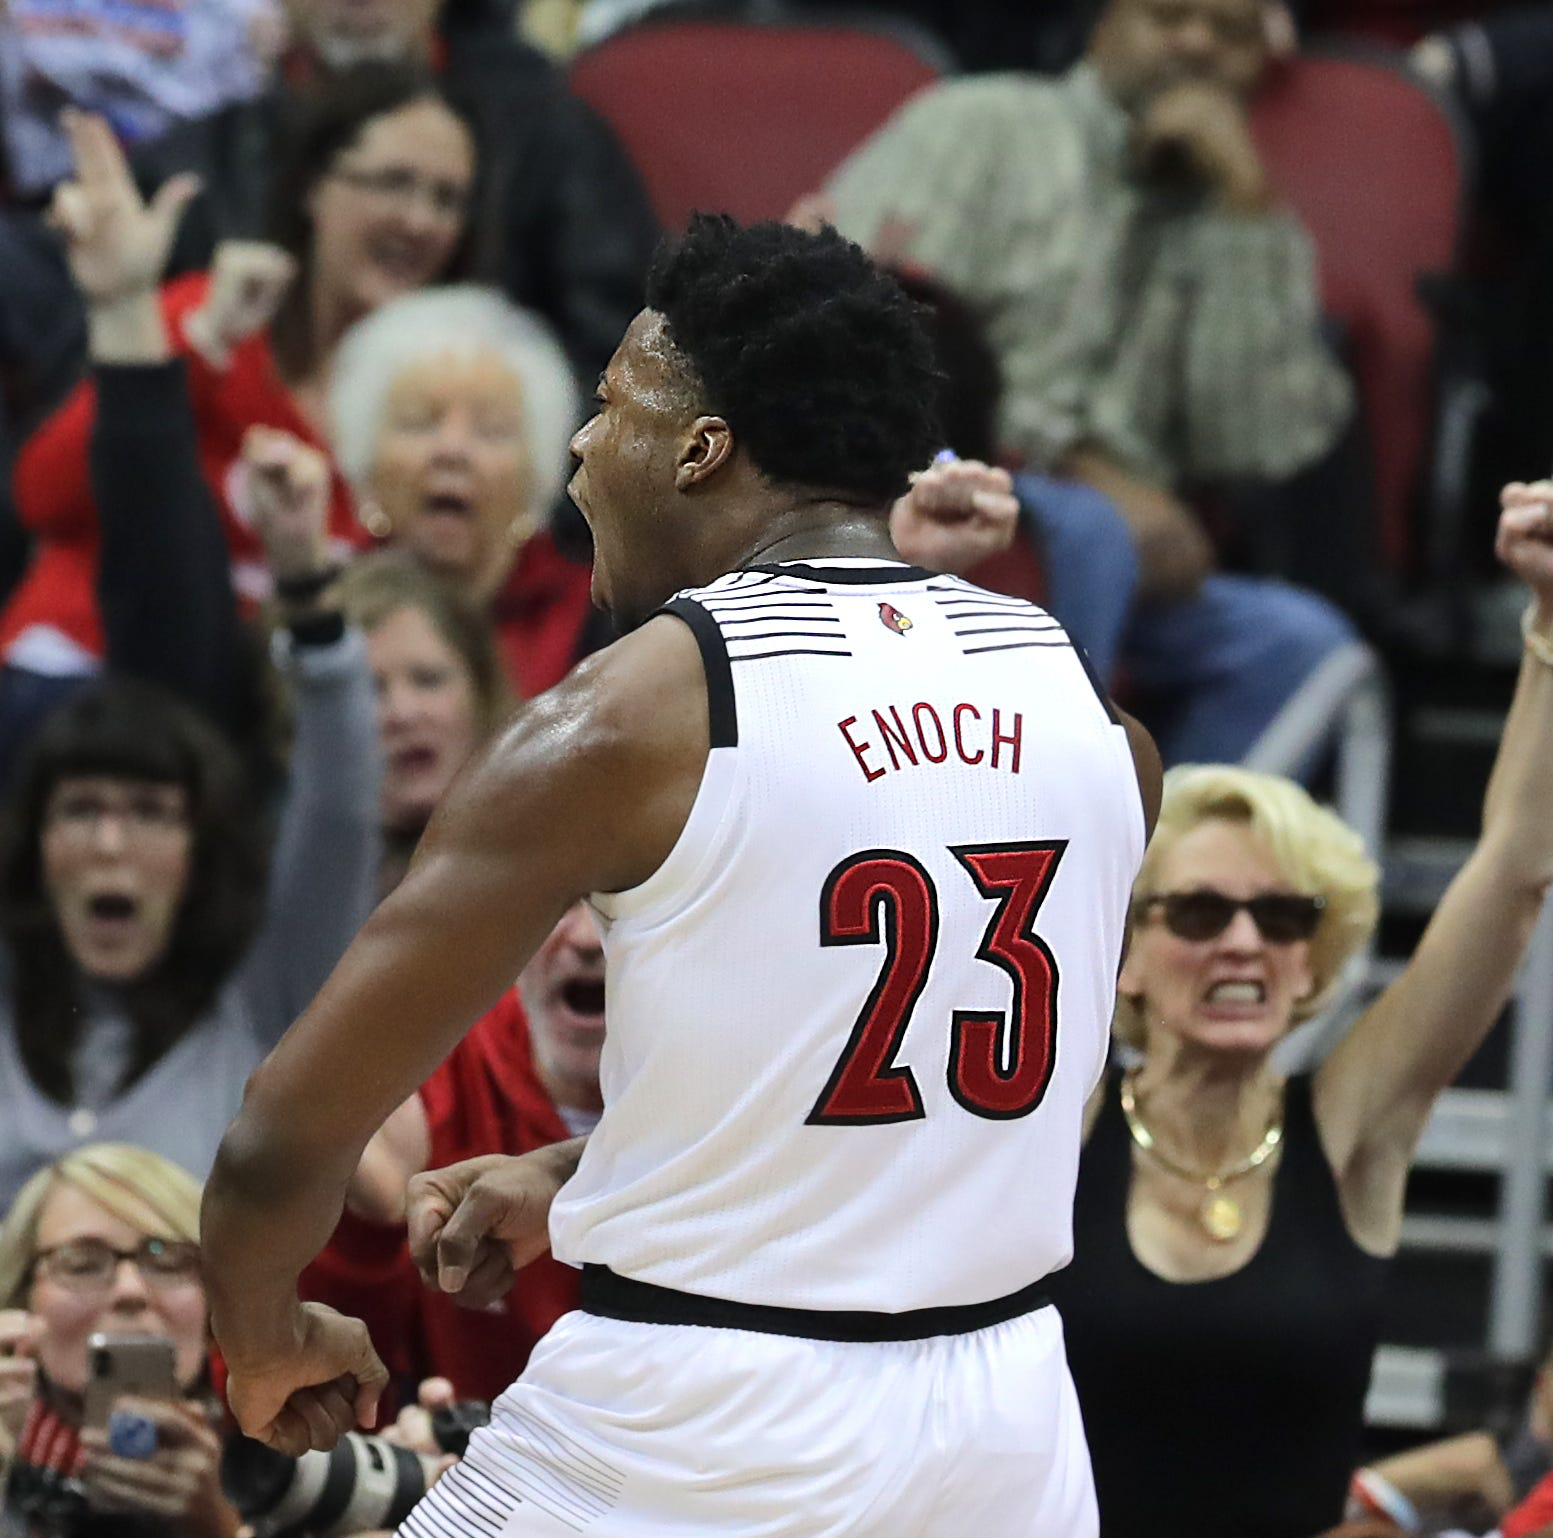 Steven Enoch finally finds his comfort zone with Louisville basketball